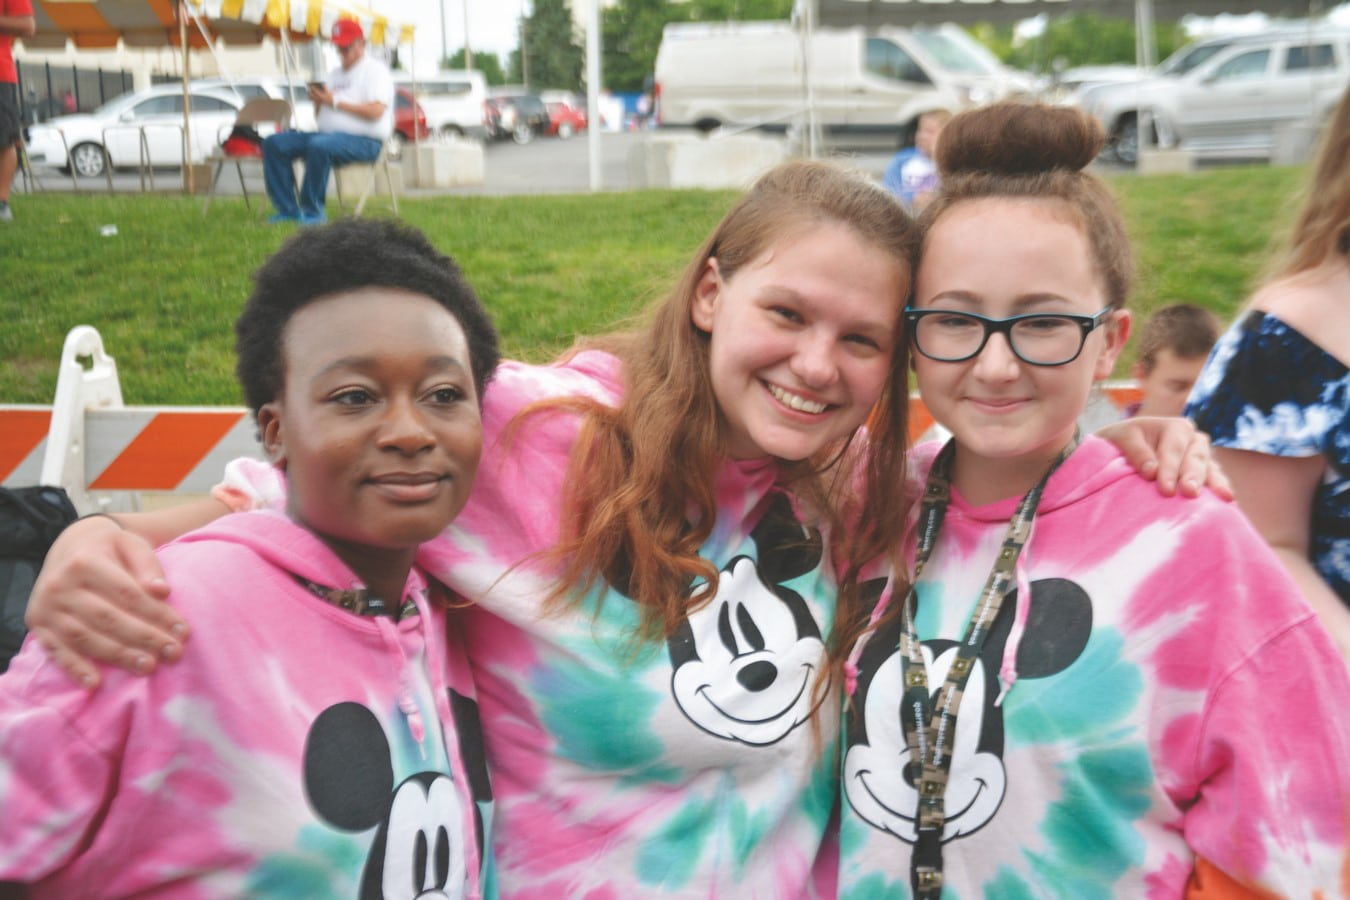 Three athletes in matching tie-dye hoodies pose for a photo with smiles on their faces